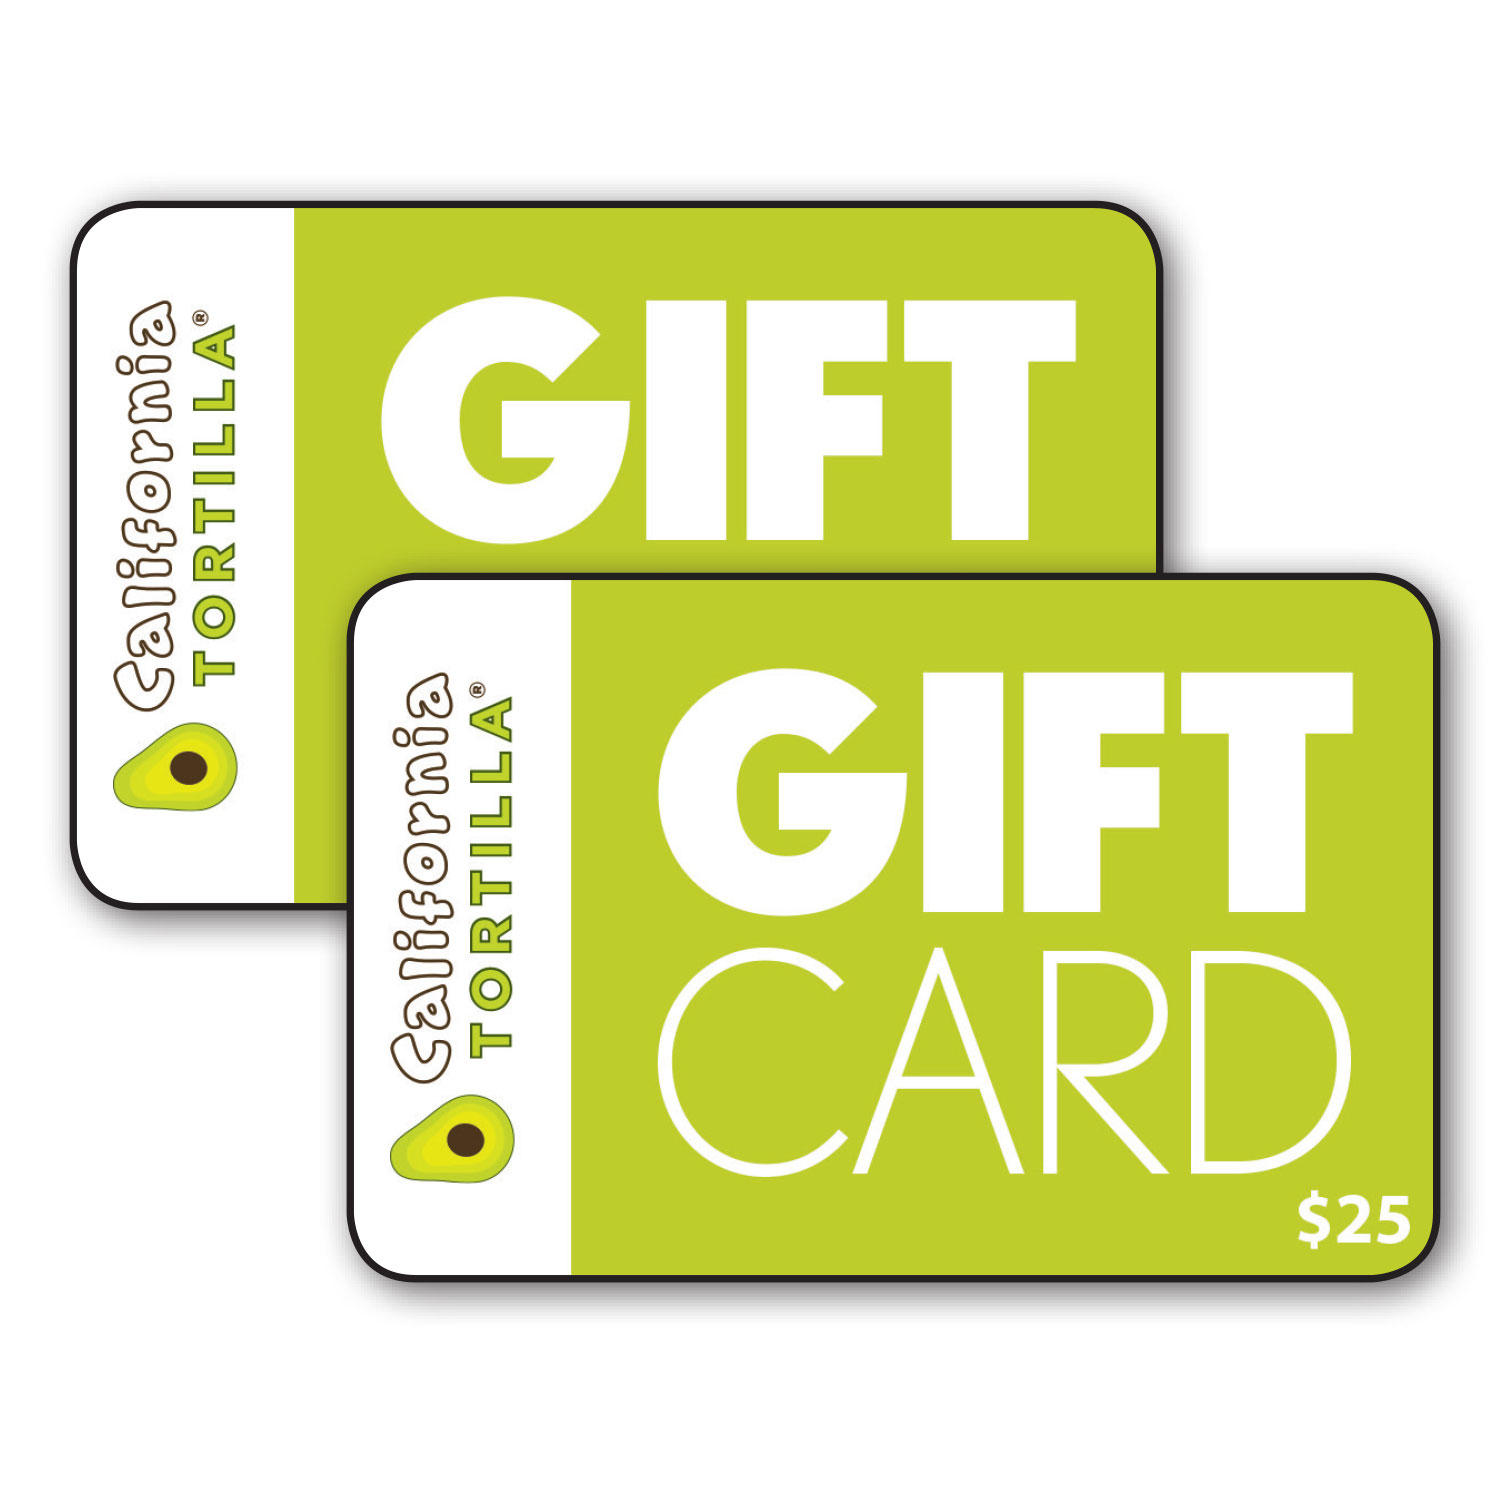 $50 (2 x $25) California Tortilla Gift Cards